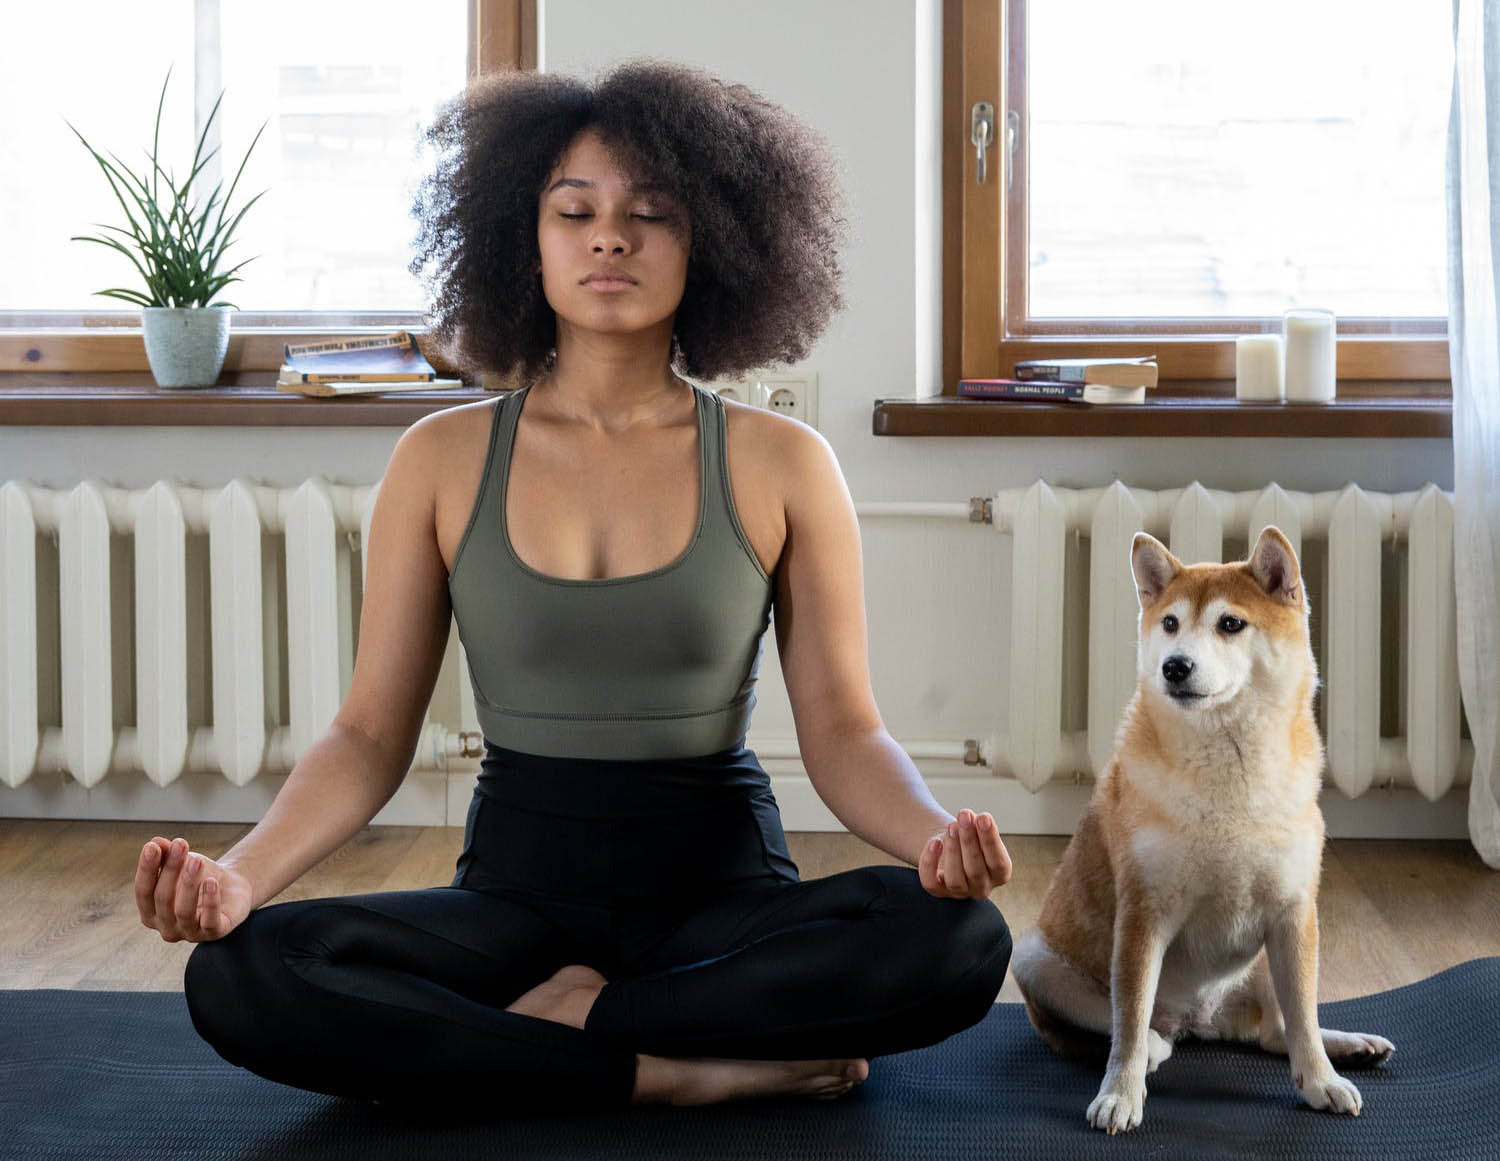 Woman meditating with a dog